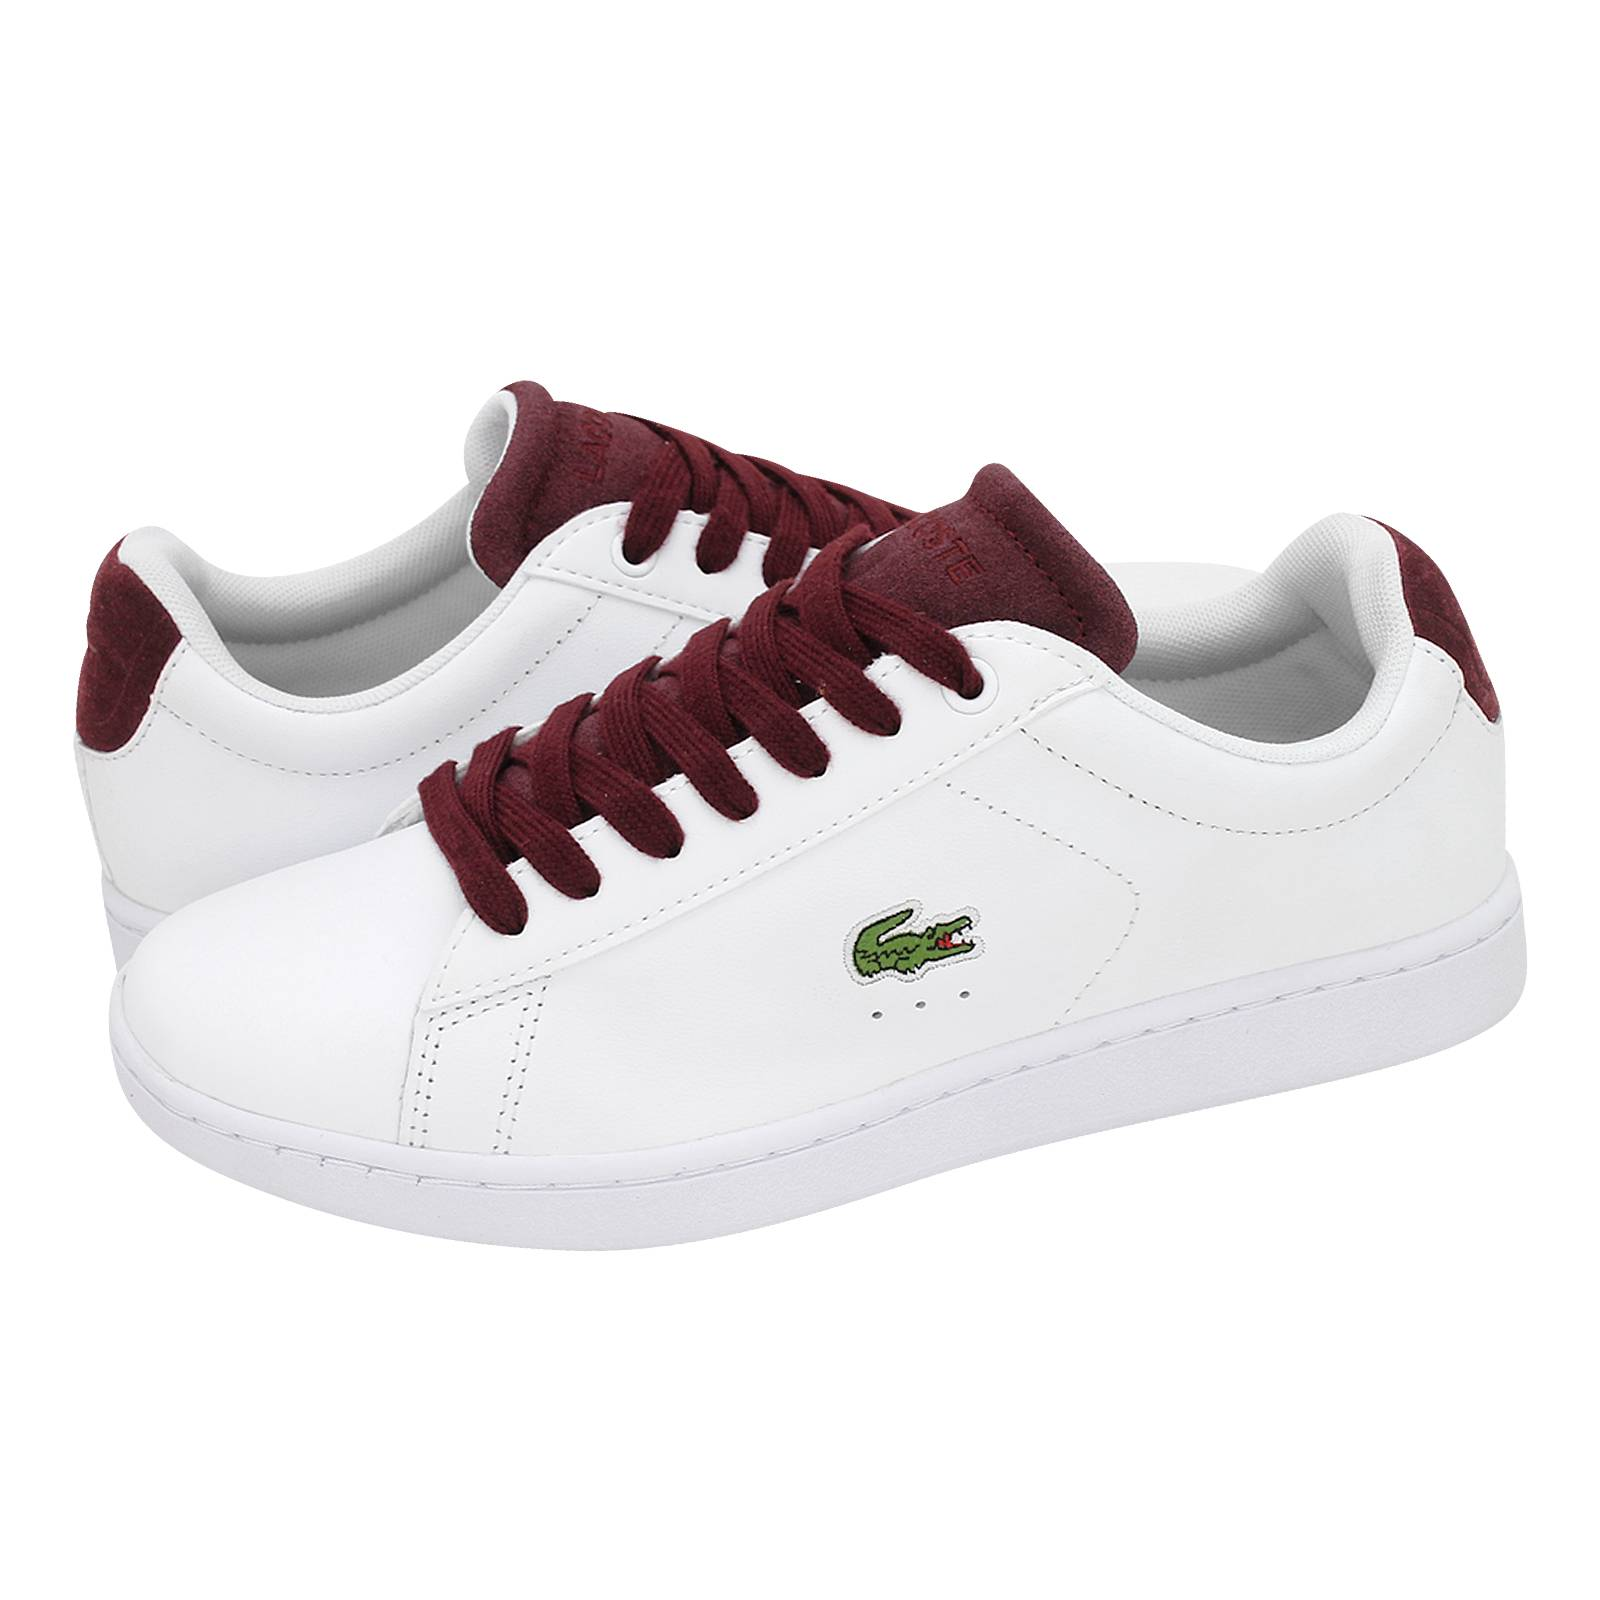 e231ca3d1dc20 Carnaby Evo 317 - Lacoste Women s casual shoes made of leather and ...